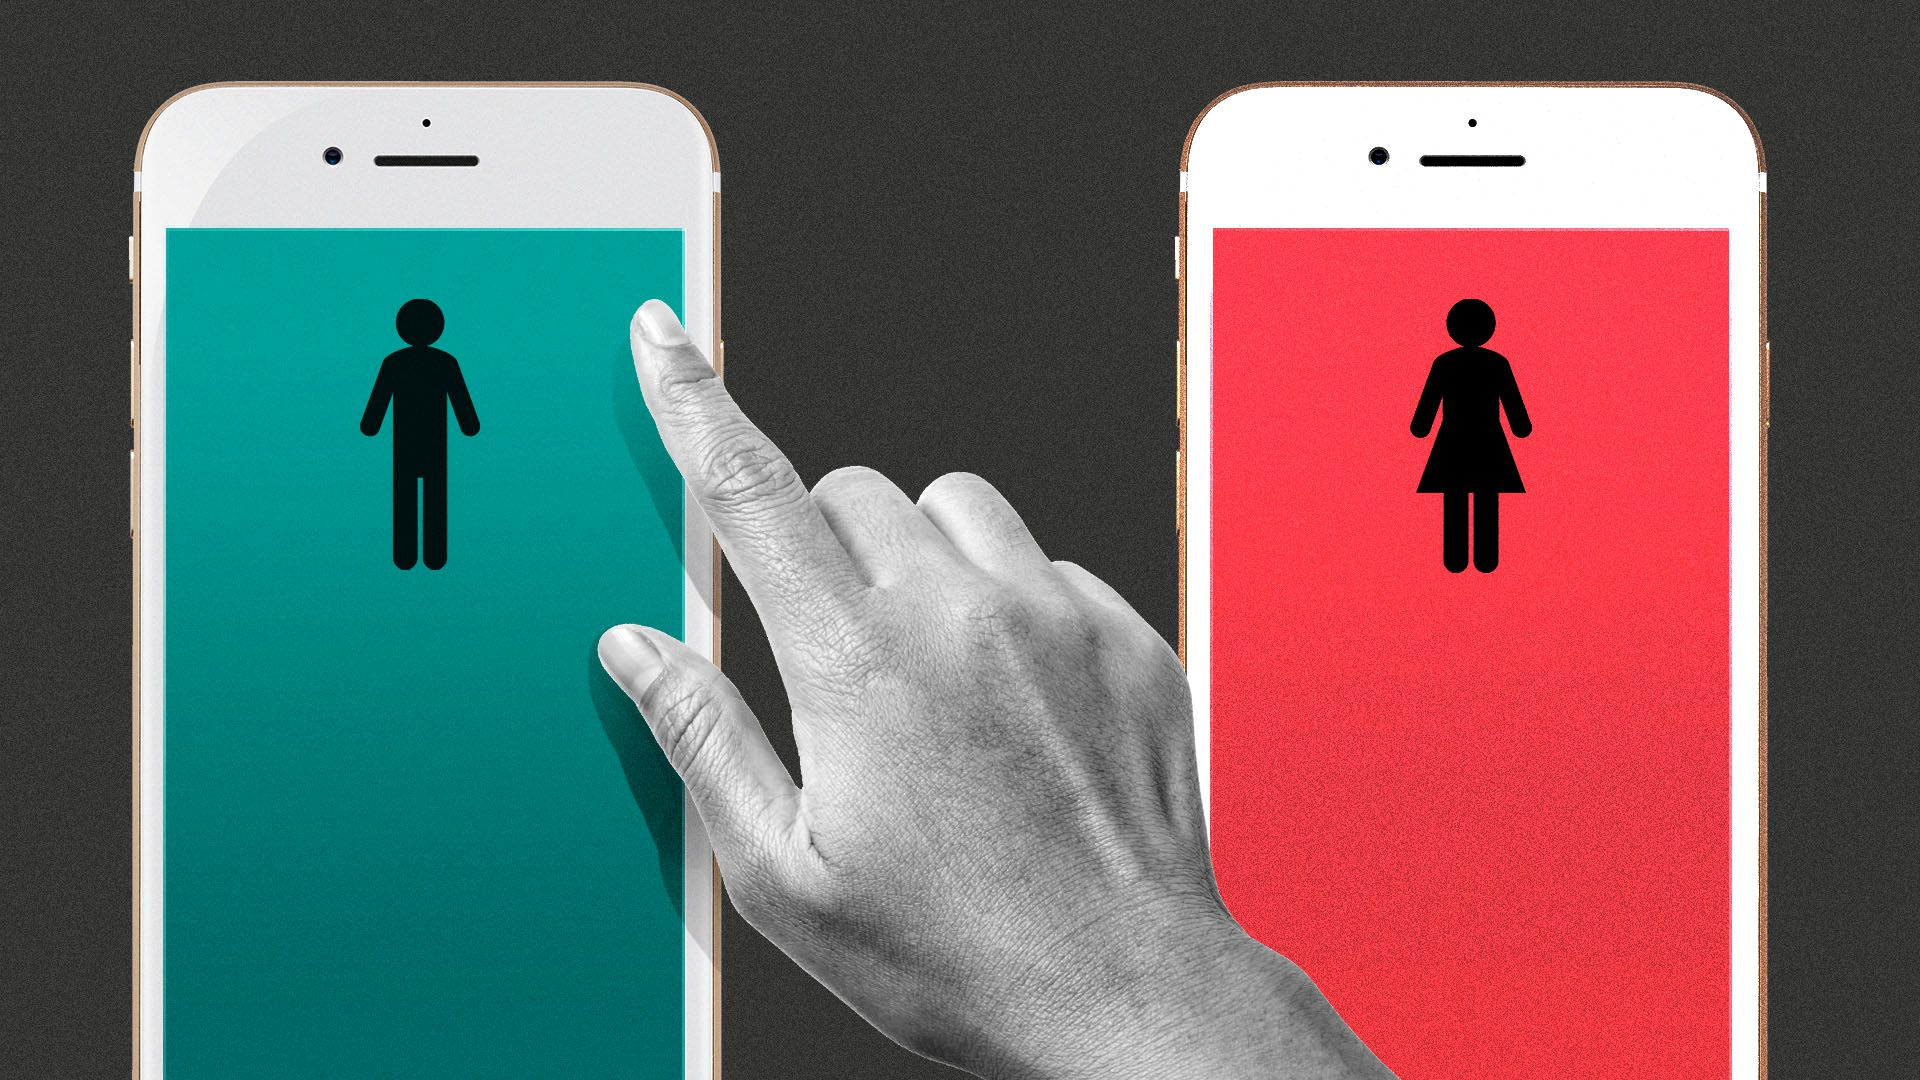 Illustration of a hand choosing between two phones, each with a male or female bathroom symbol on them